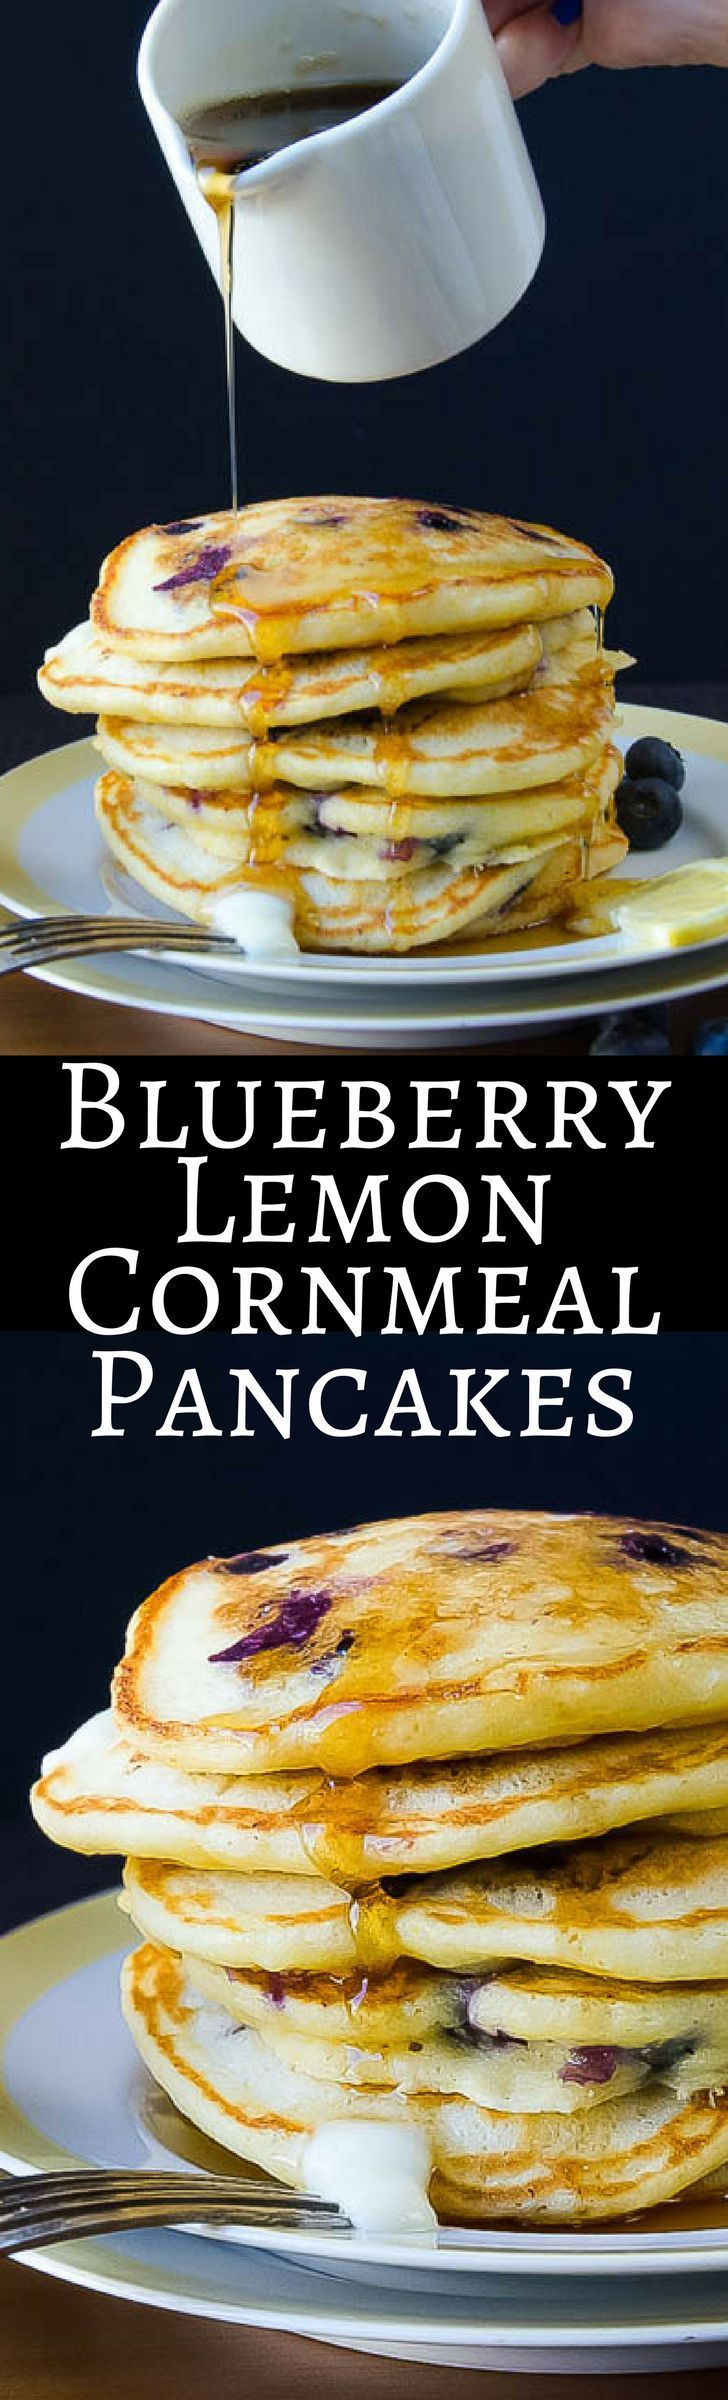 Blueberry Lemon Cornmeal Pancakes | Garlic & Zest